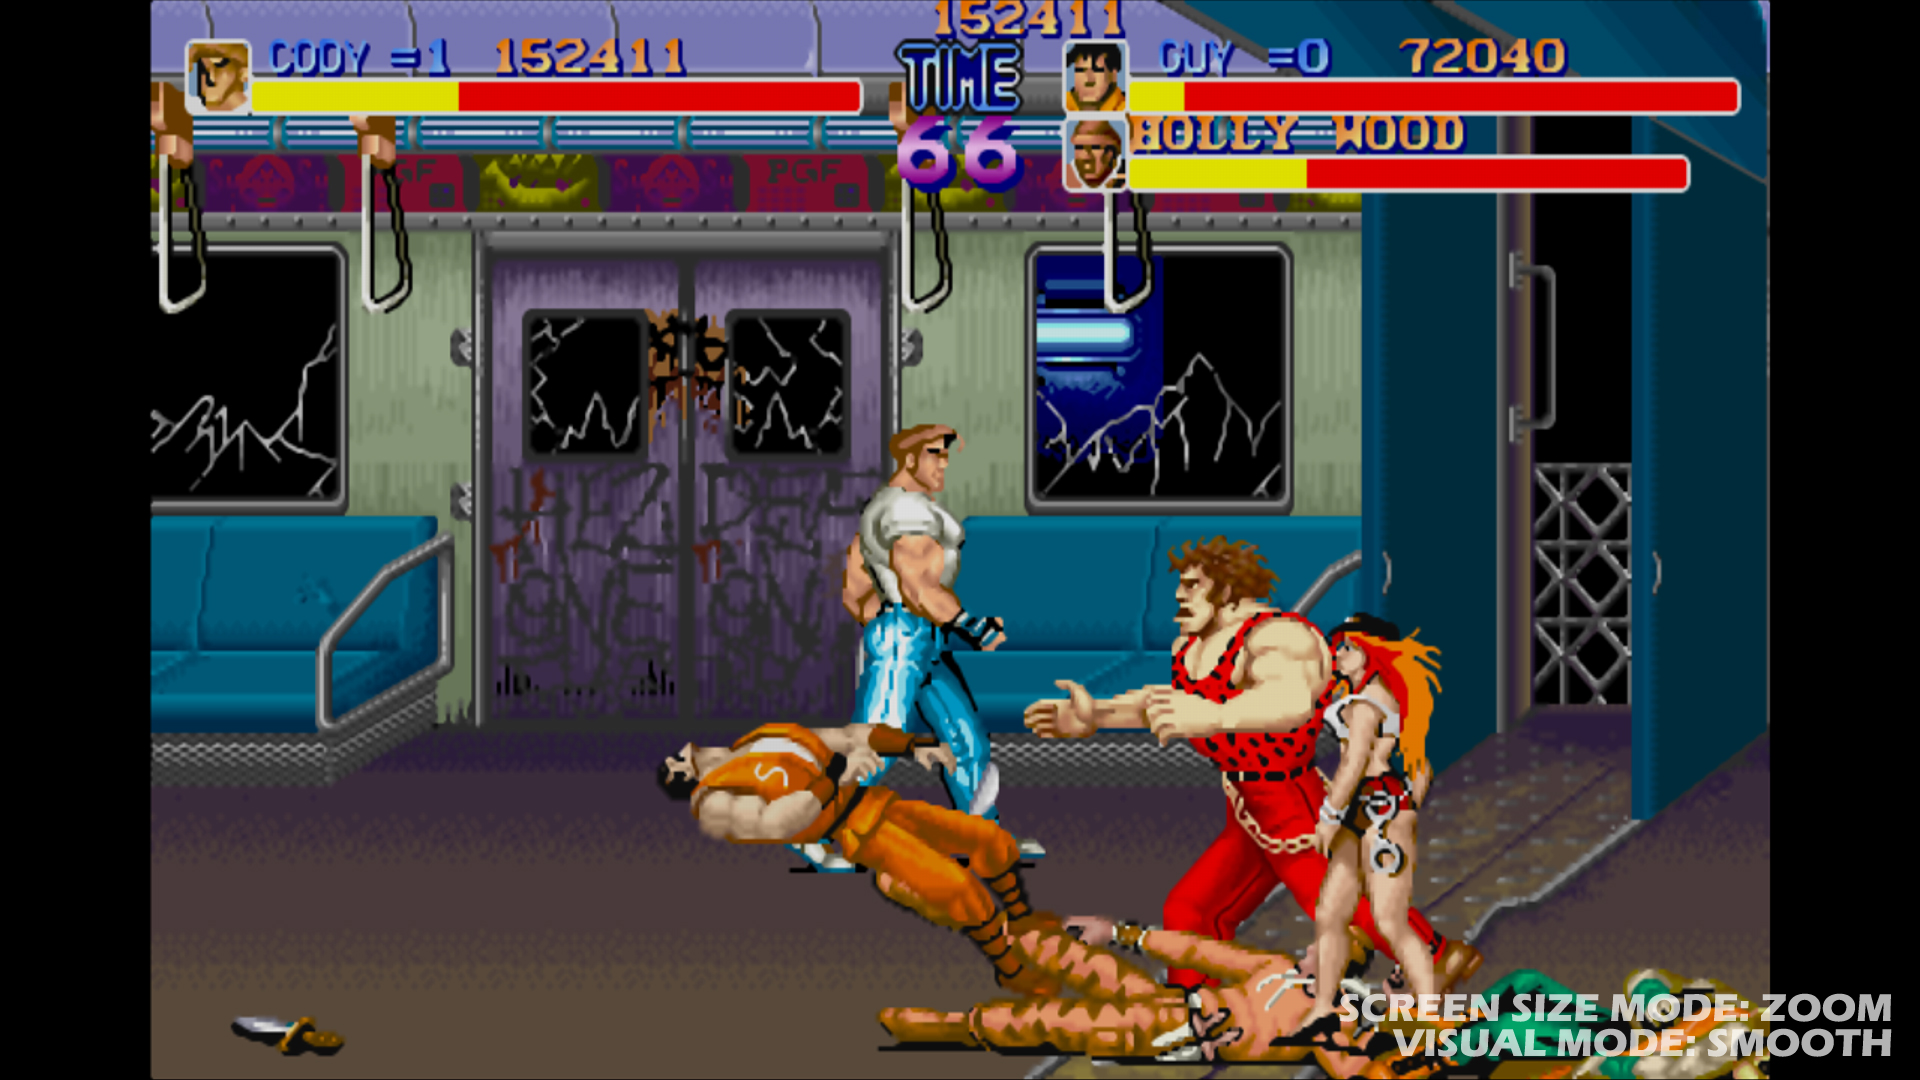 A screenshot from Final Fight, a braling video game by Capcom